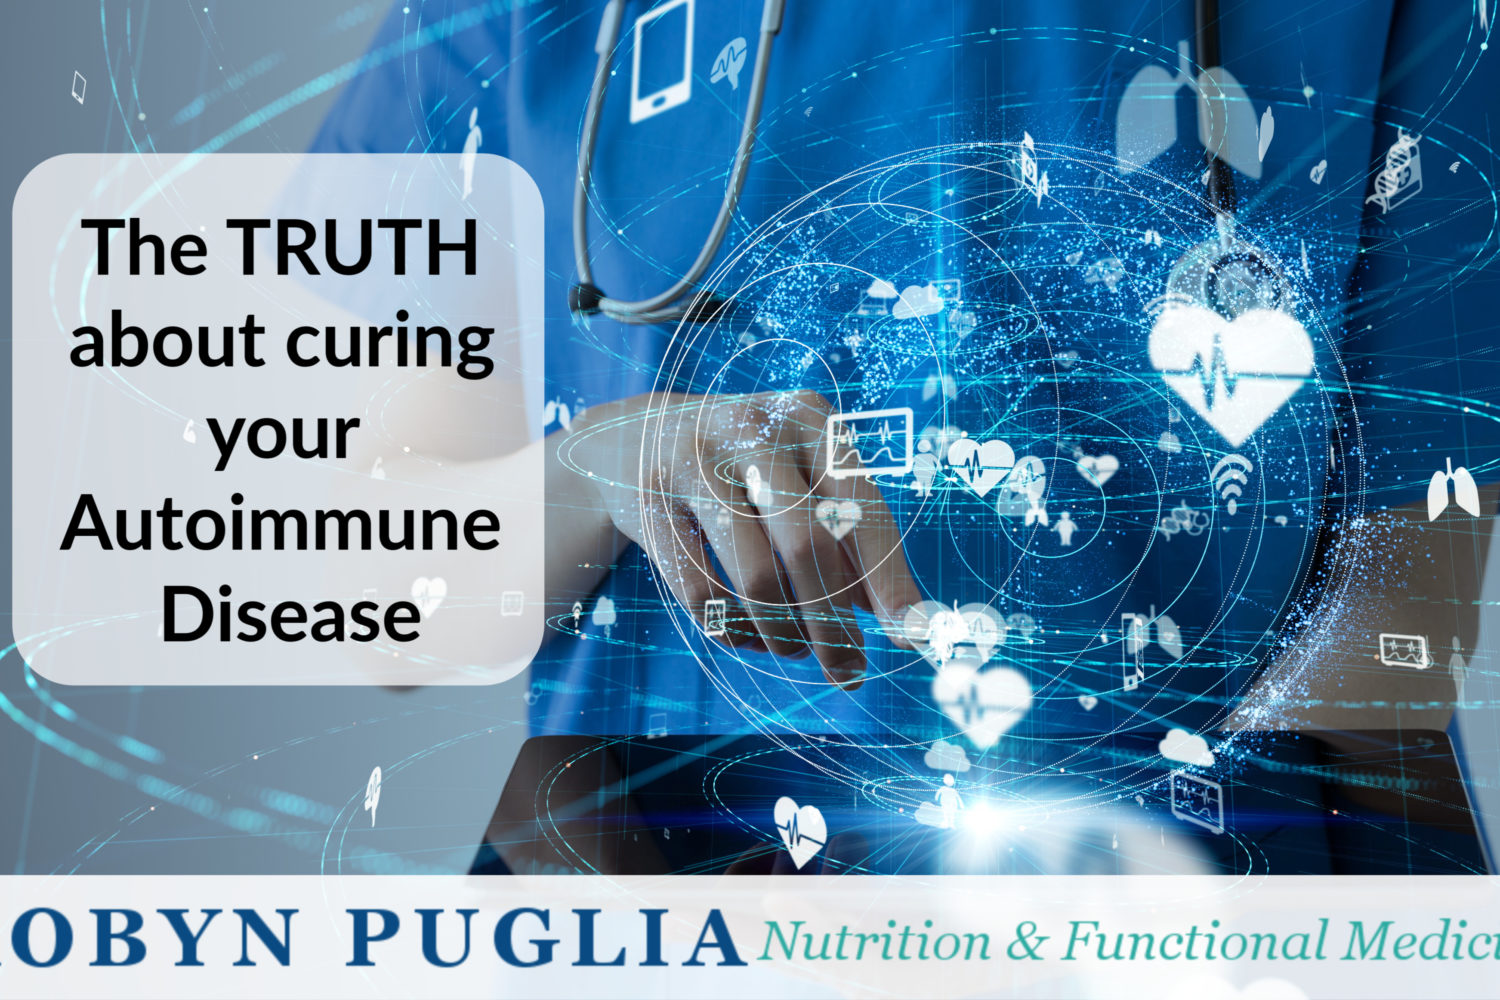 The Truth About Curing Your Autoimmunity